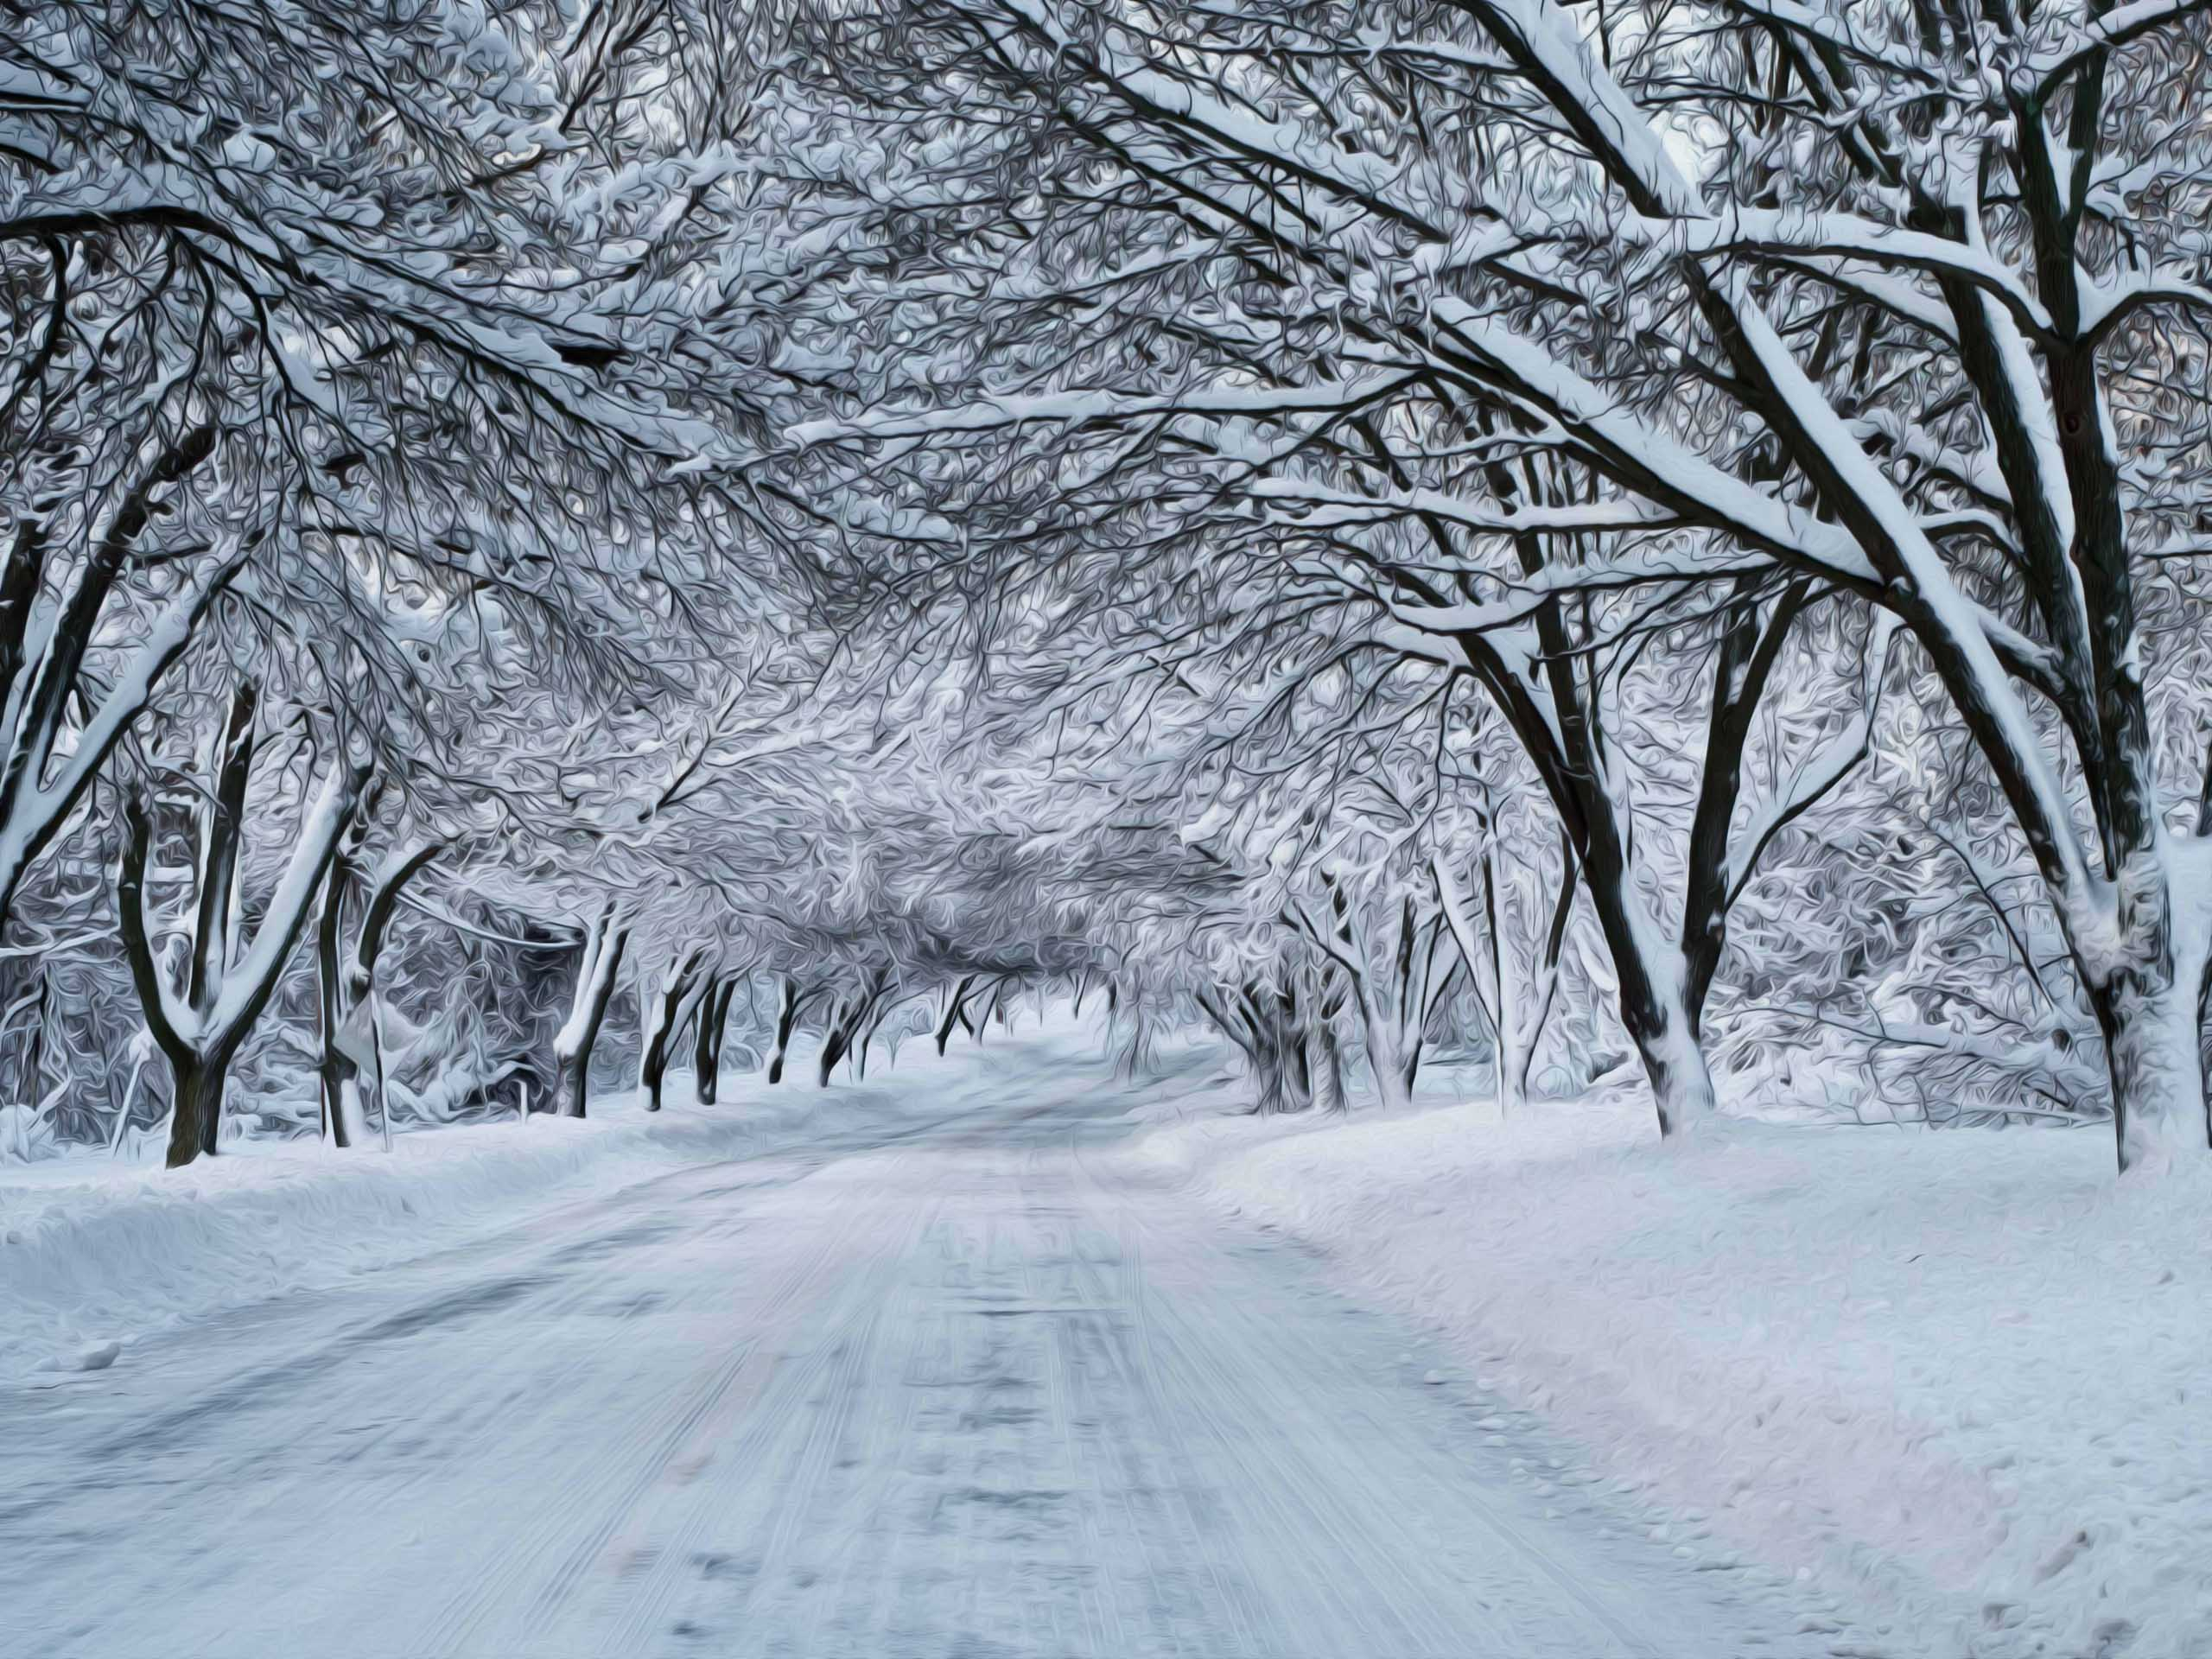 winter snow scene photography wallpaper